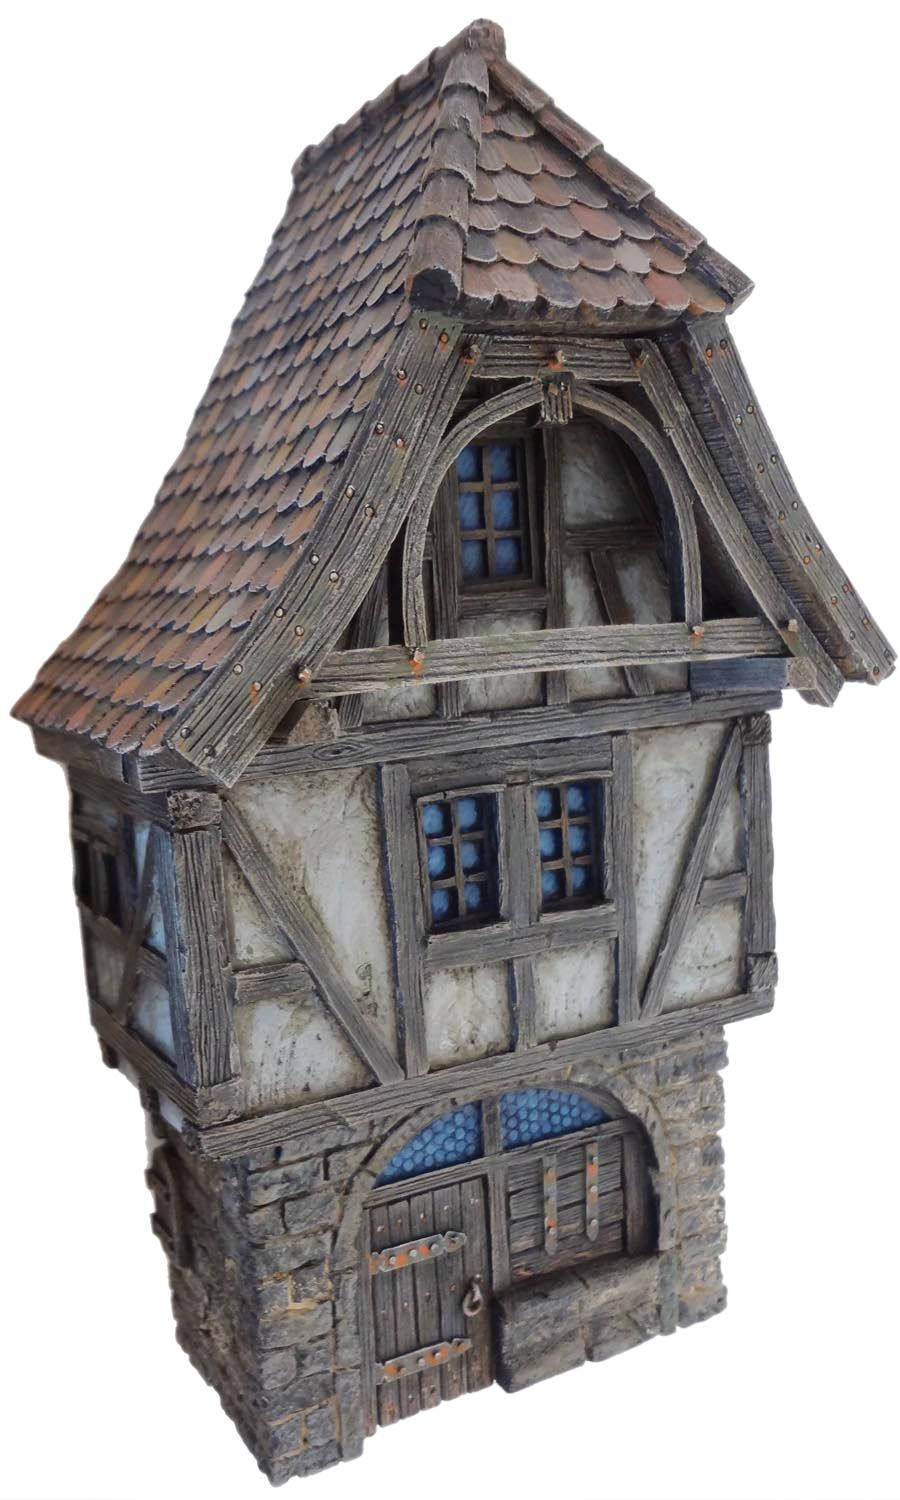 A review of Stronghold Terrain's medieval/fantasy townhouse fronts, enriched with some mild eye candy and finished off with a plea for using...